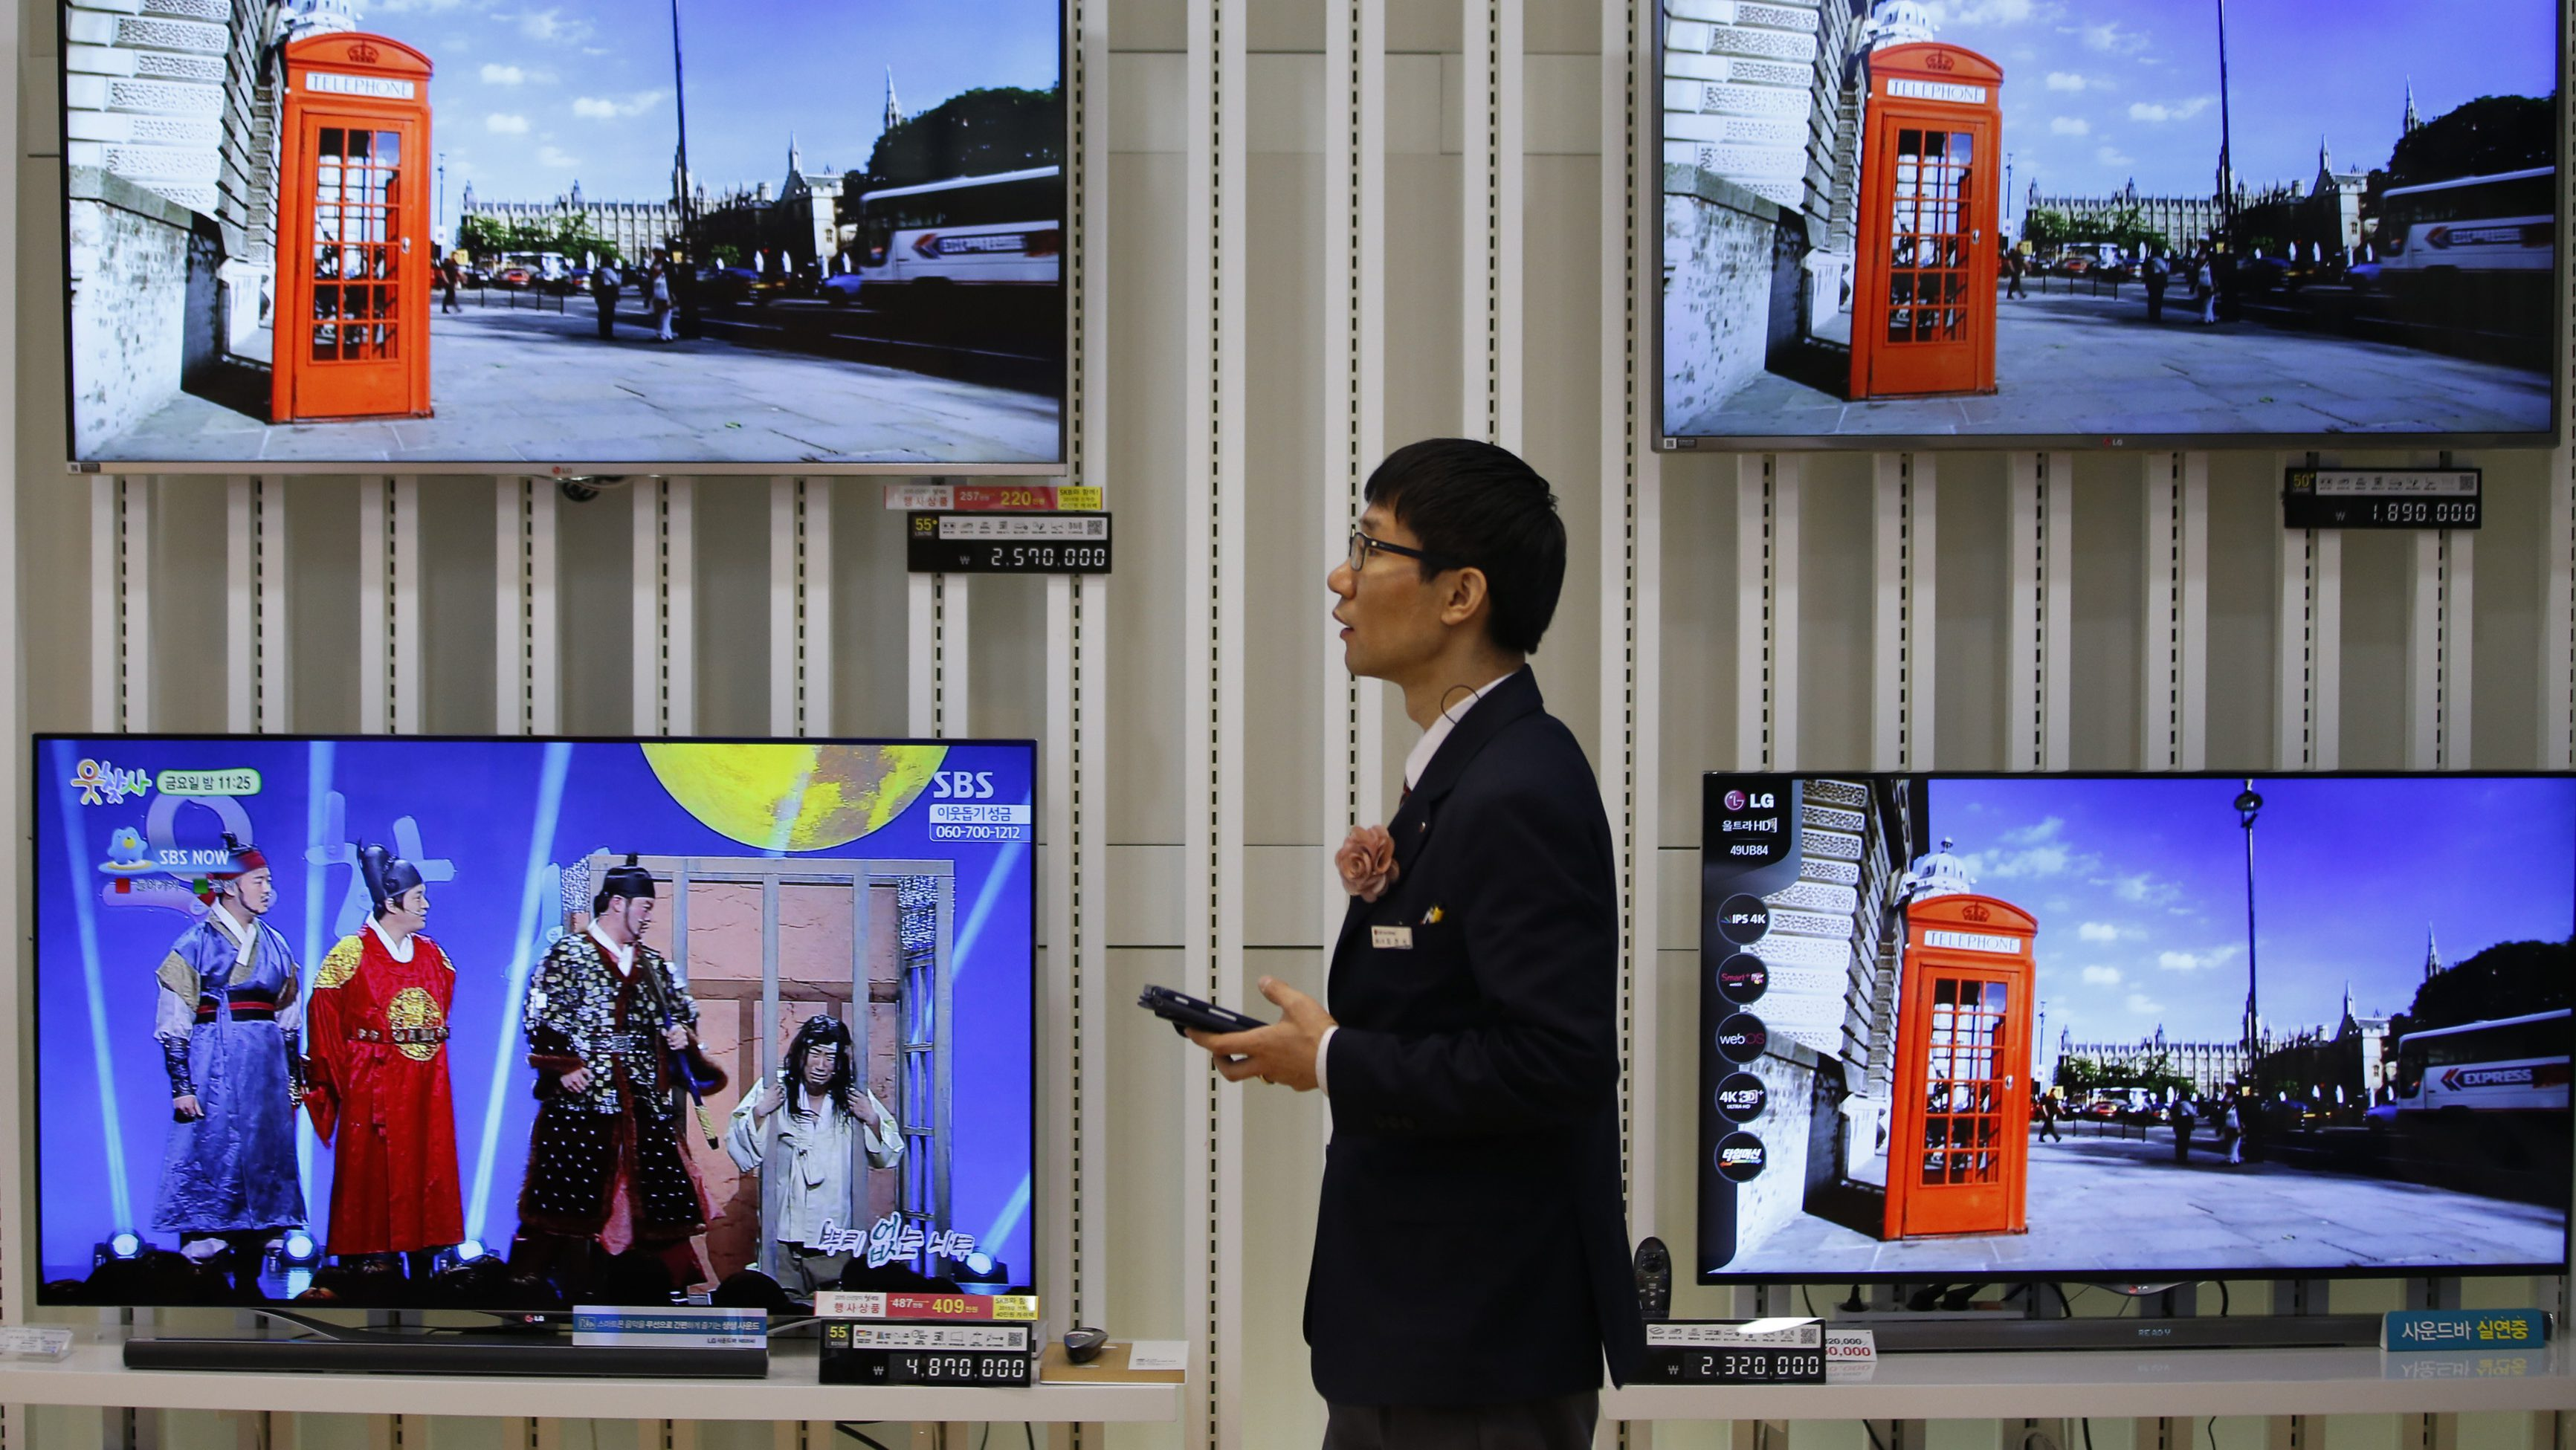 An employee uses his mobile phone in front of LG Electronics' organic light-emitting diode (OLED) TV sets, which are made with LG Display flat screens, at its store in Seoul January 28, 2015. South Korea's LG Display Co Ltd booked its highest quarterly profit in almost four years on Wednesday, buoyed by firm demand for liquid crystal displays (LCD) from television makers and client Apple Inc.   REUTERS/Kim Hong-Ji (SOUTH KOREA - Tags: BUSINESS) - GM1EB1S156O01